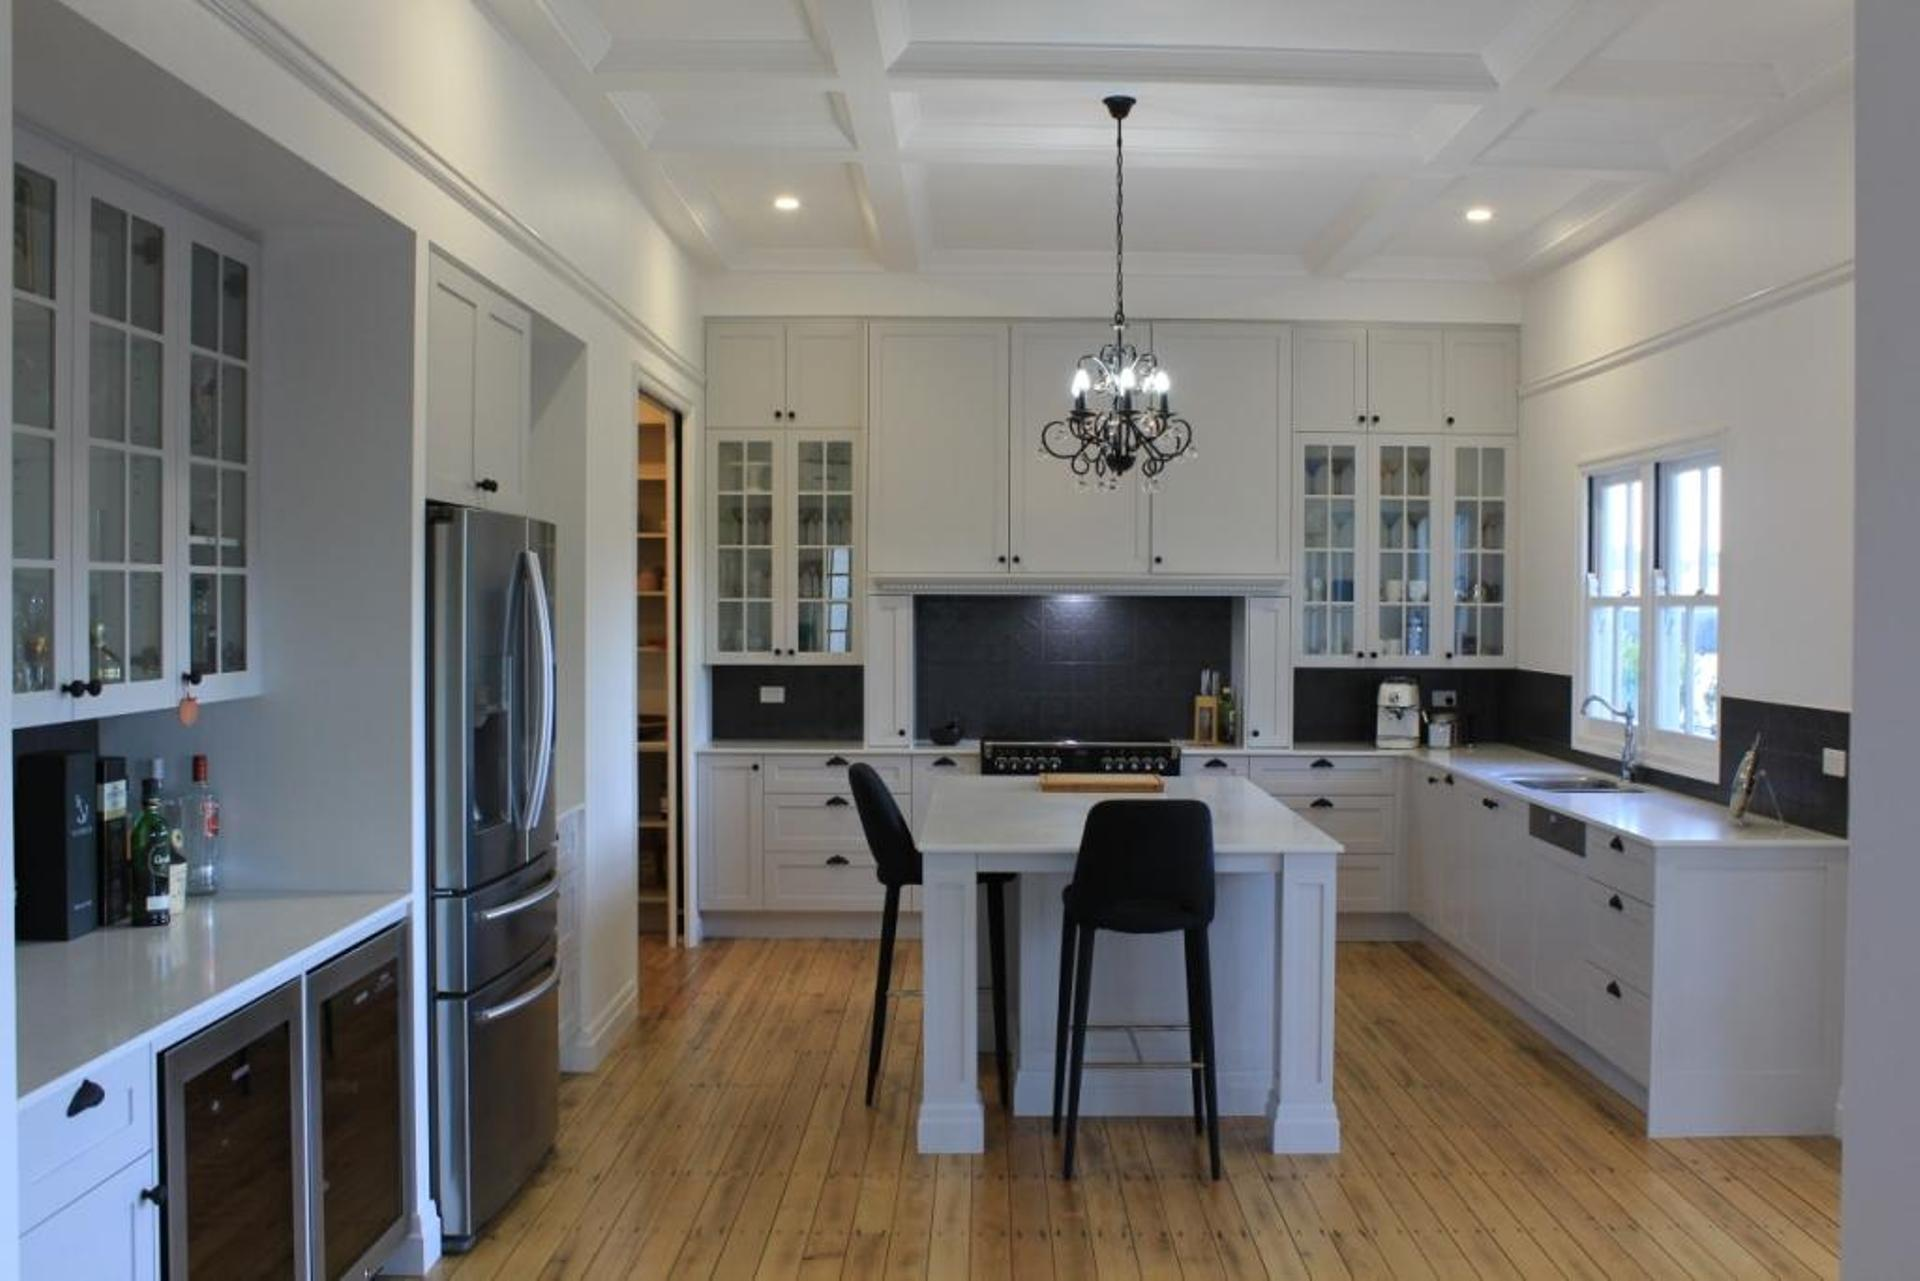 Shaker Style KItchen Brisbane Kitchen Design